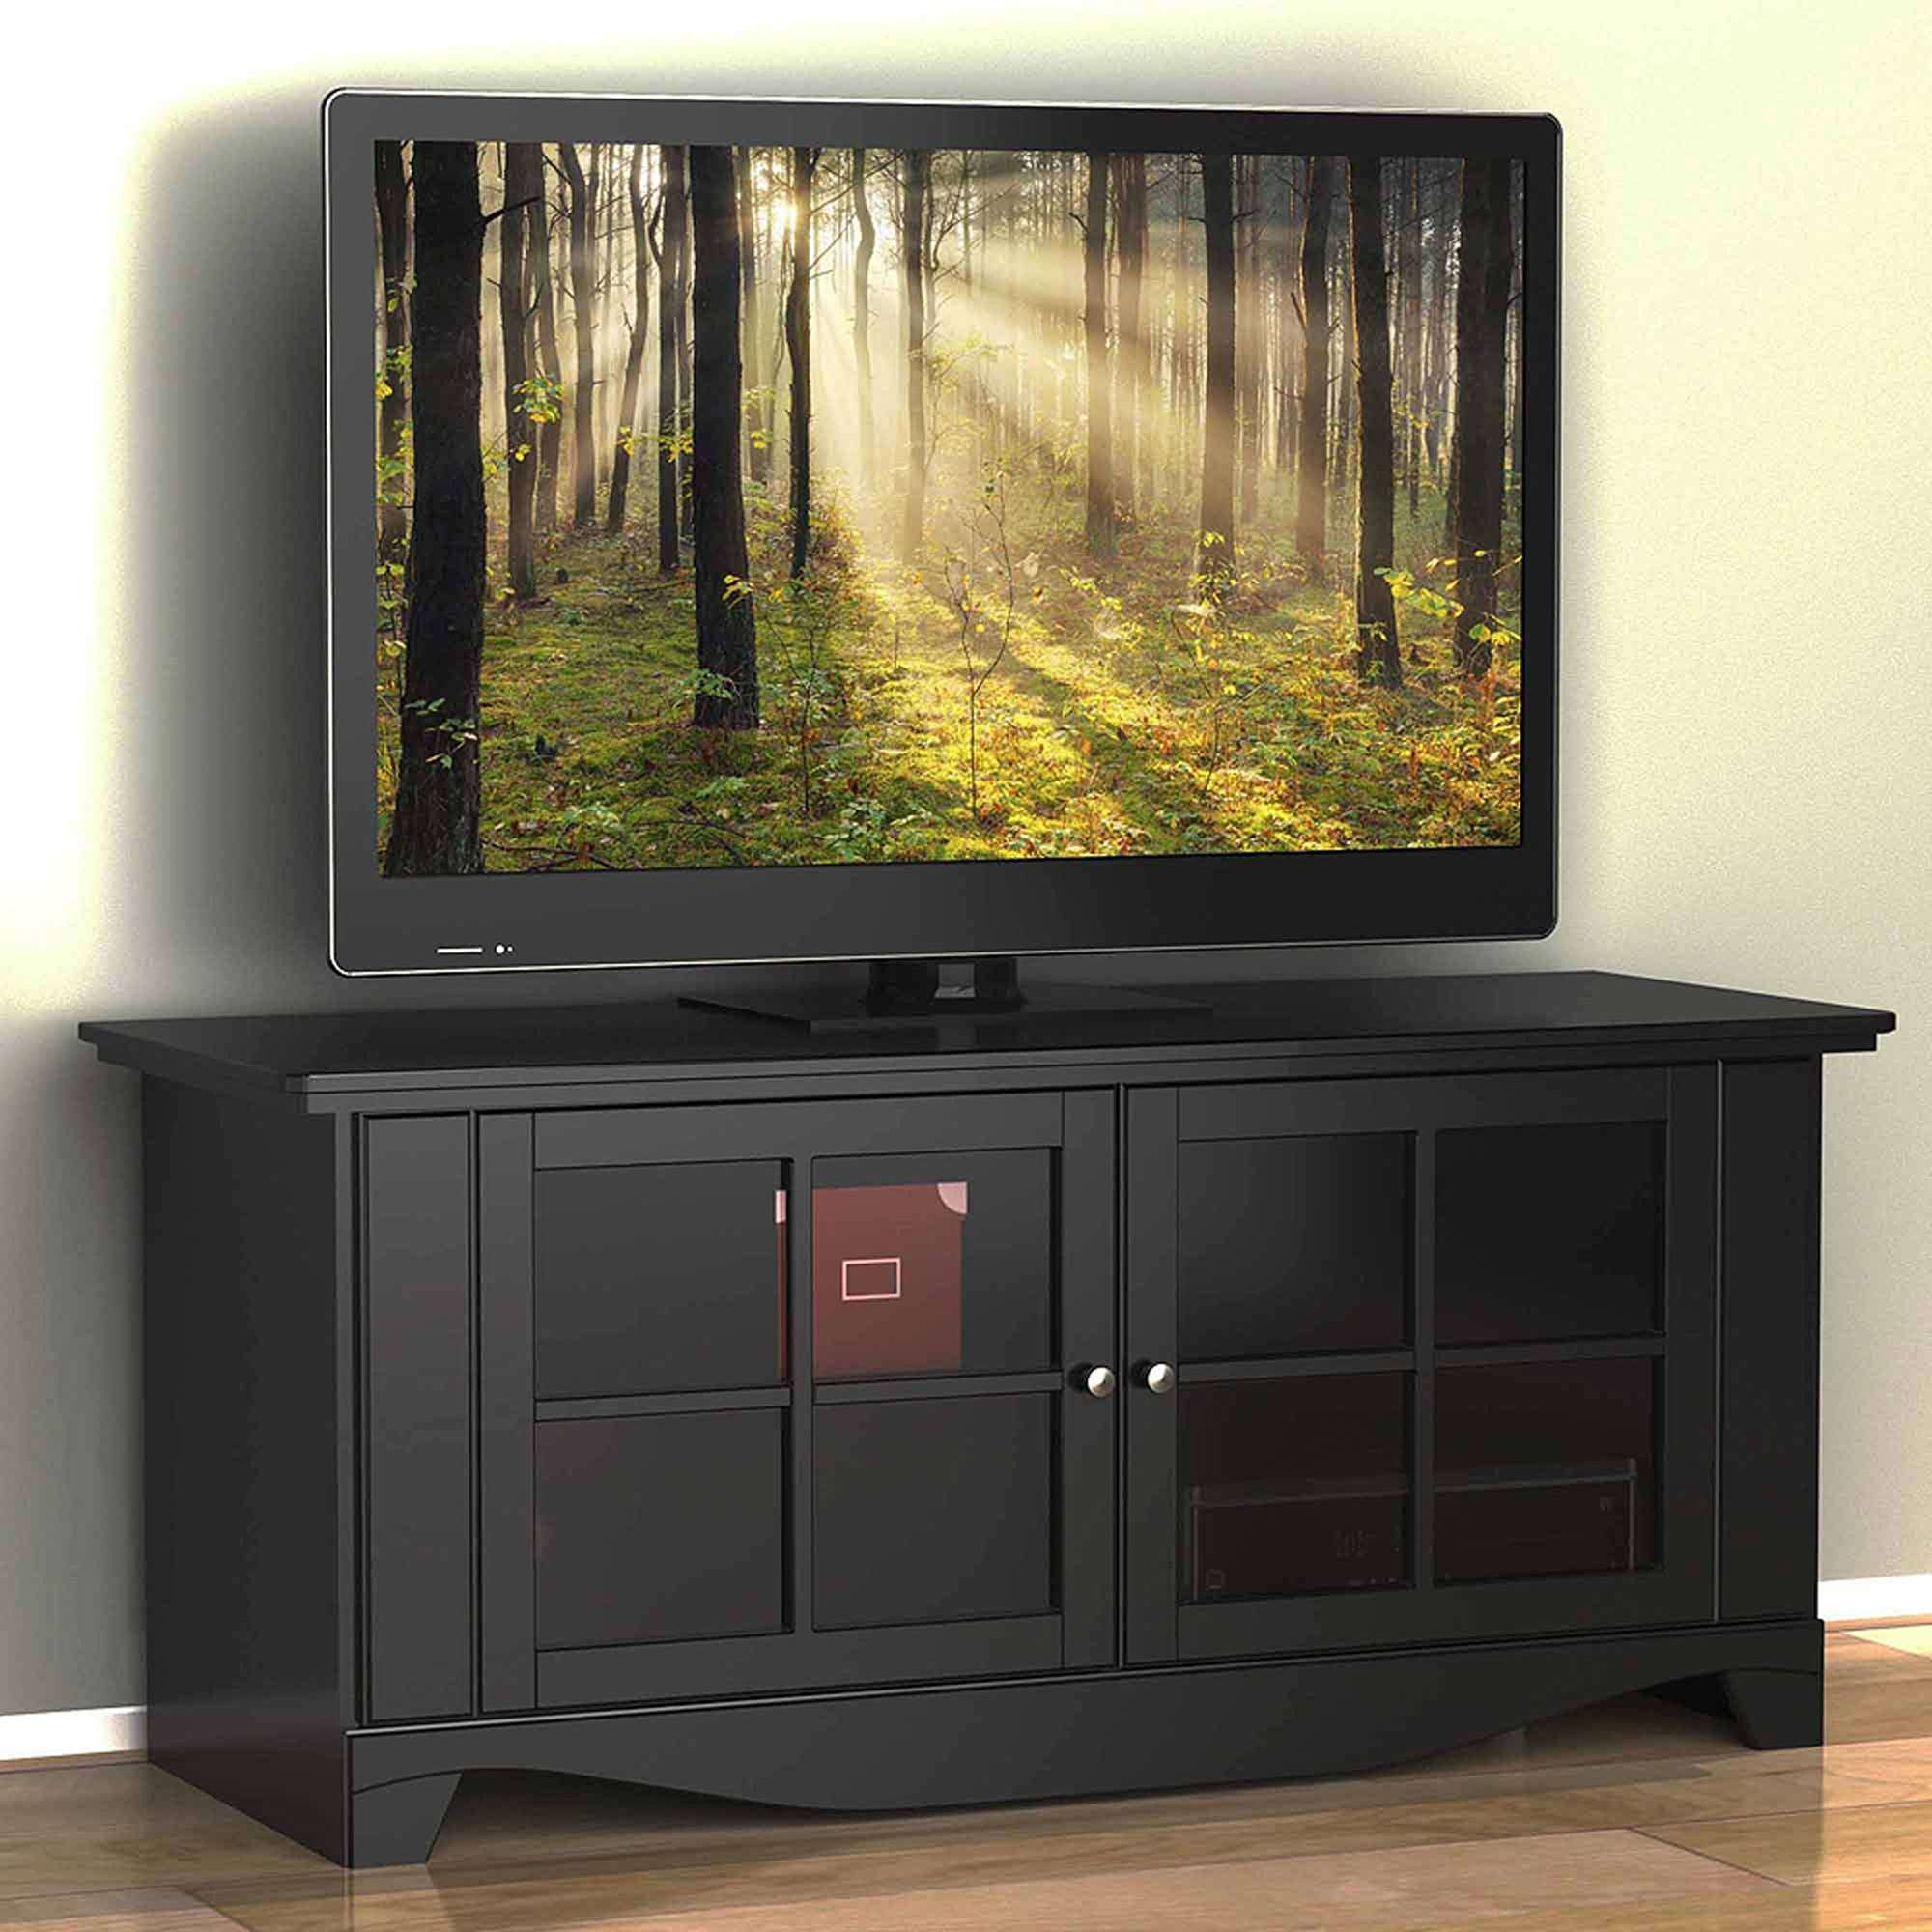 "Pinnacle Tv Stand, For Tvs Up To 60"" – Walmart In Nexera Tv Stands (View 12 of 15)"